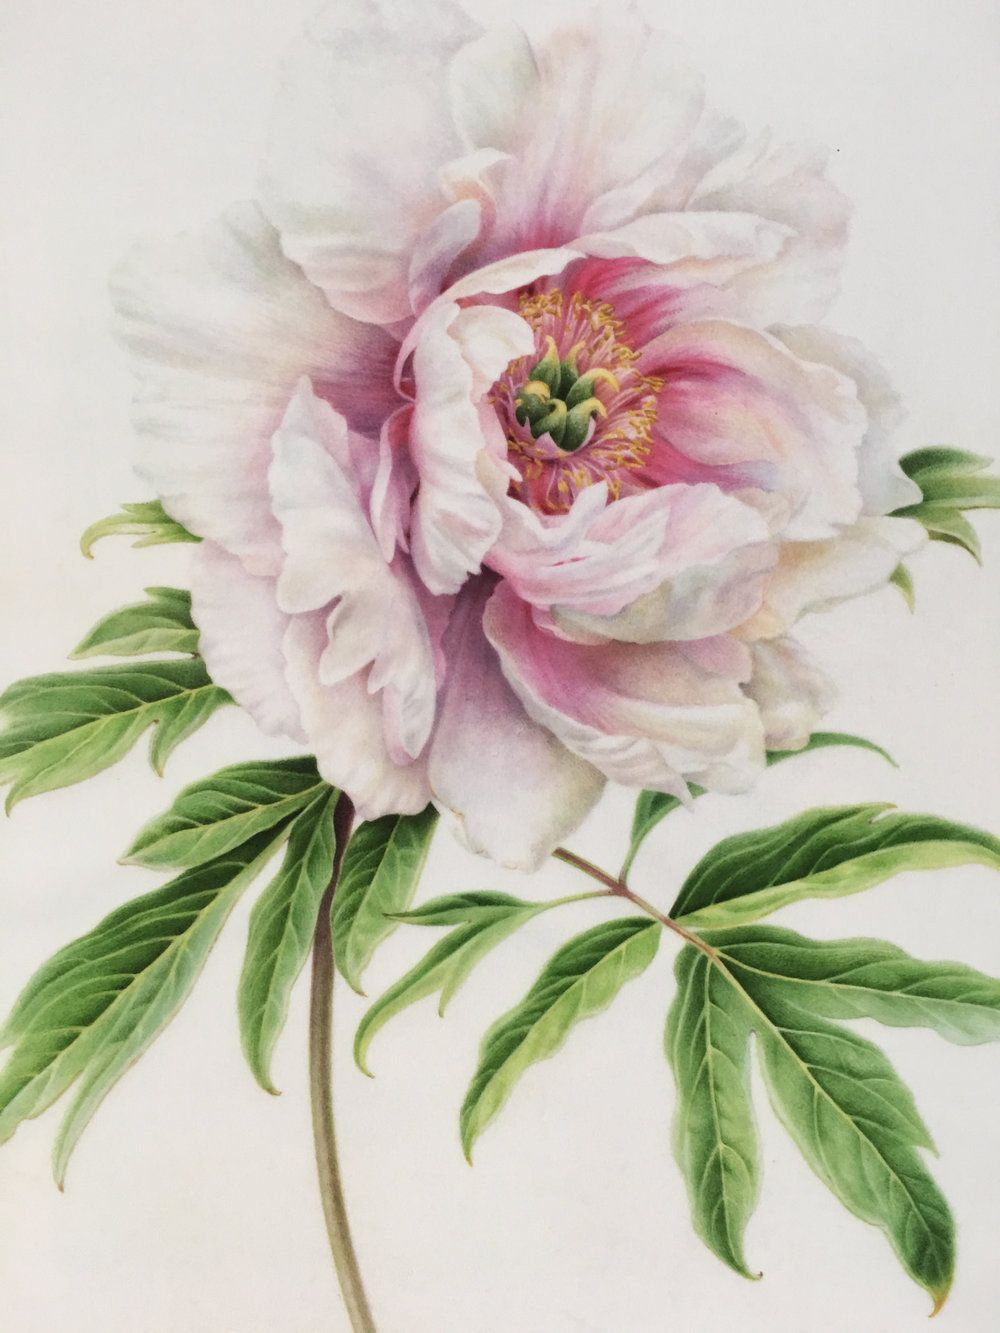 Jim S Peony Fine Art Print In 2020 Flower Art Botanical